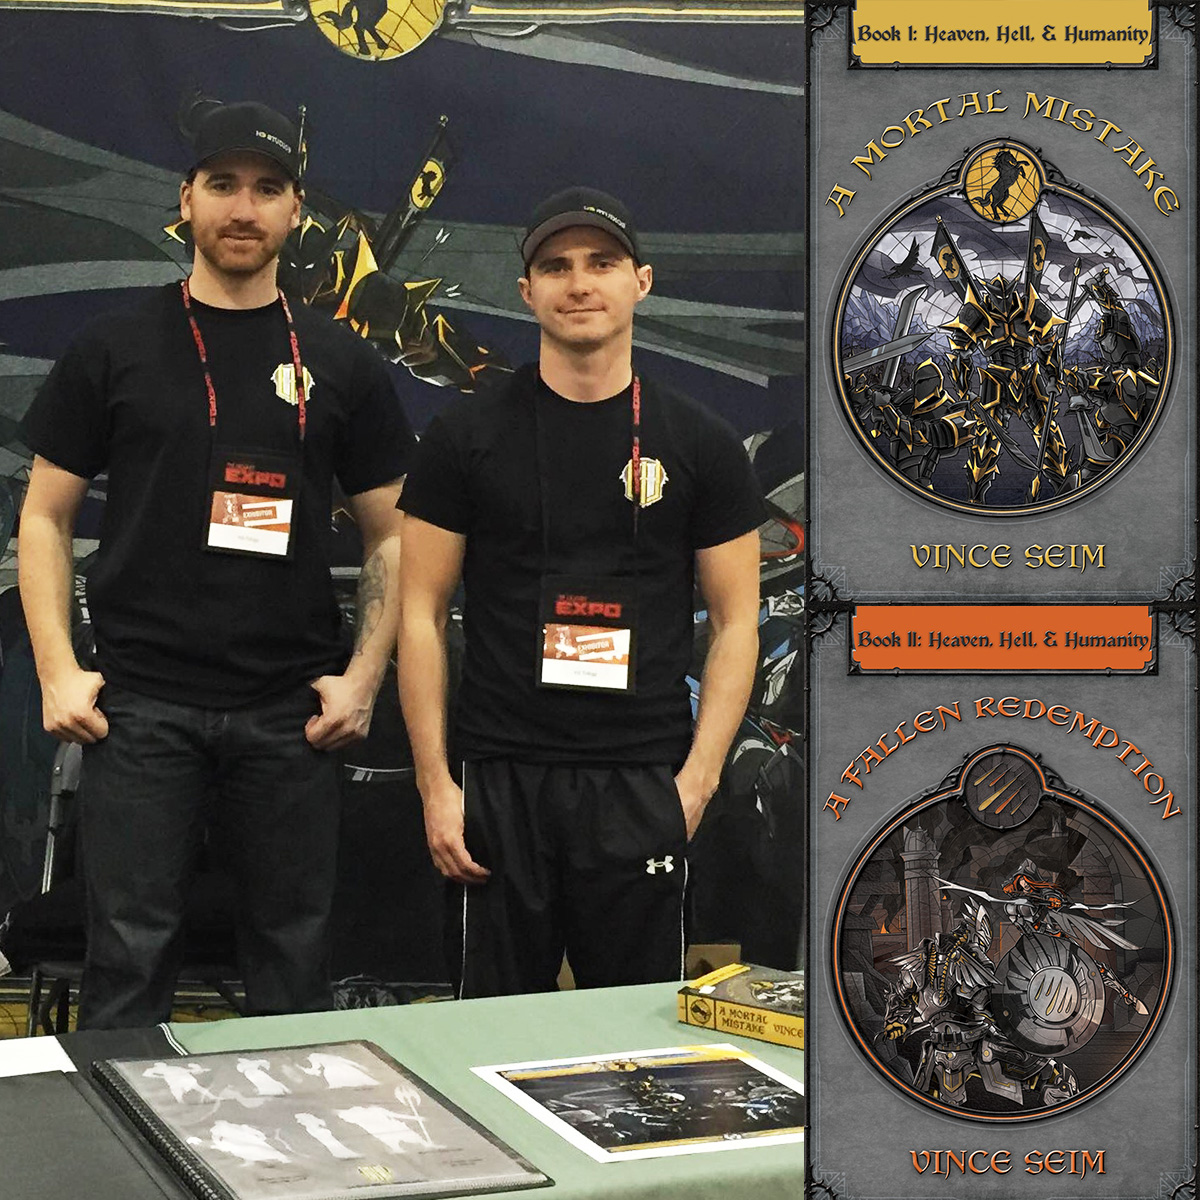 Vince Seim and Chance Clark of the Heaven, Hell & Humanity Epic Fantasy Novel Series